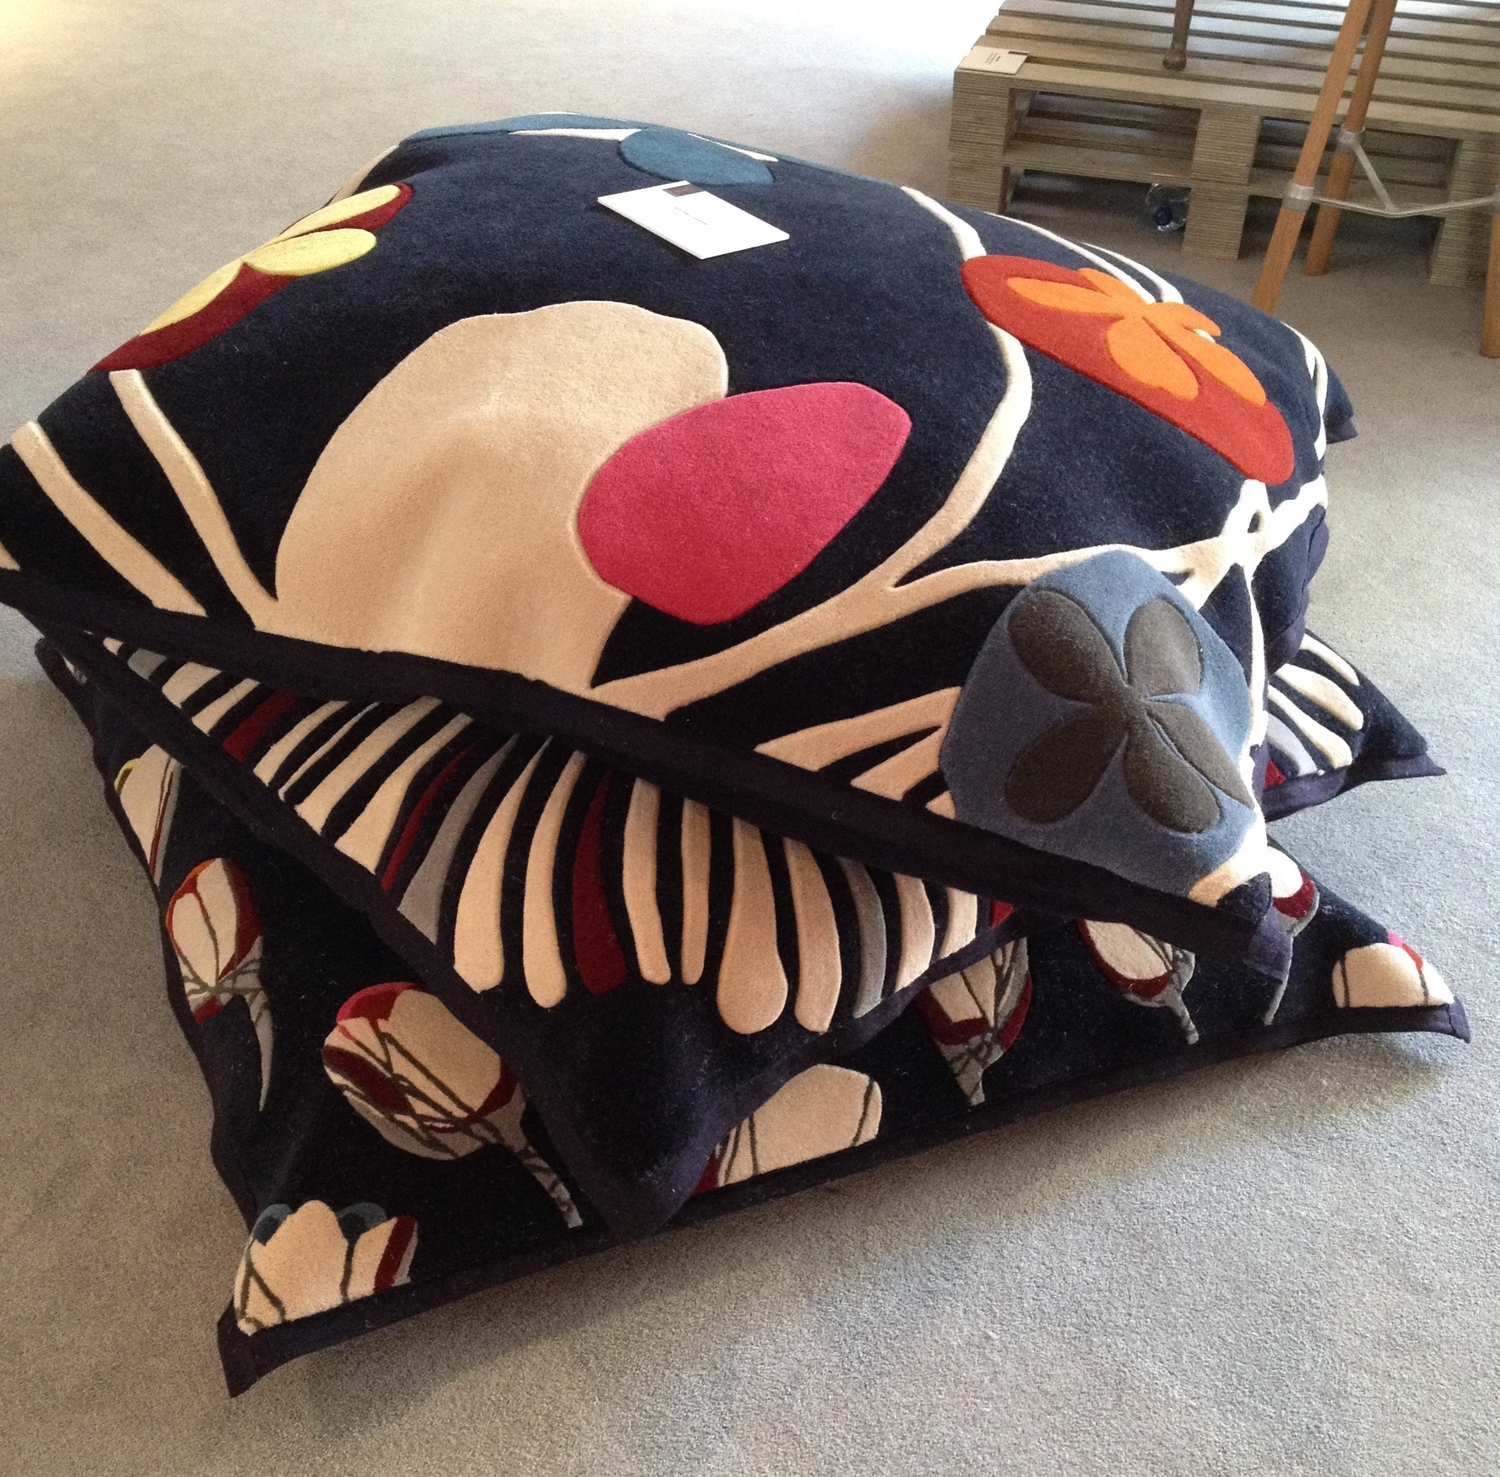 Tuft Limited Editions floor cushions by  Maud Designs .